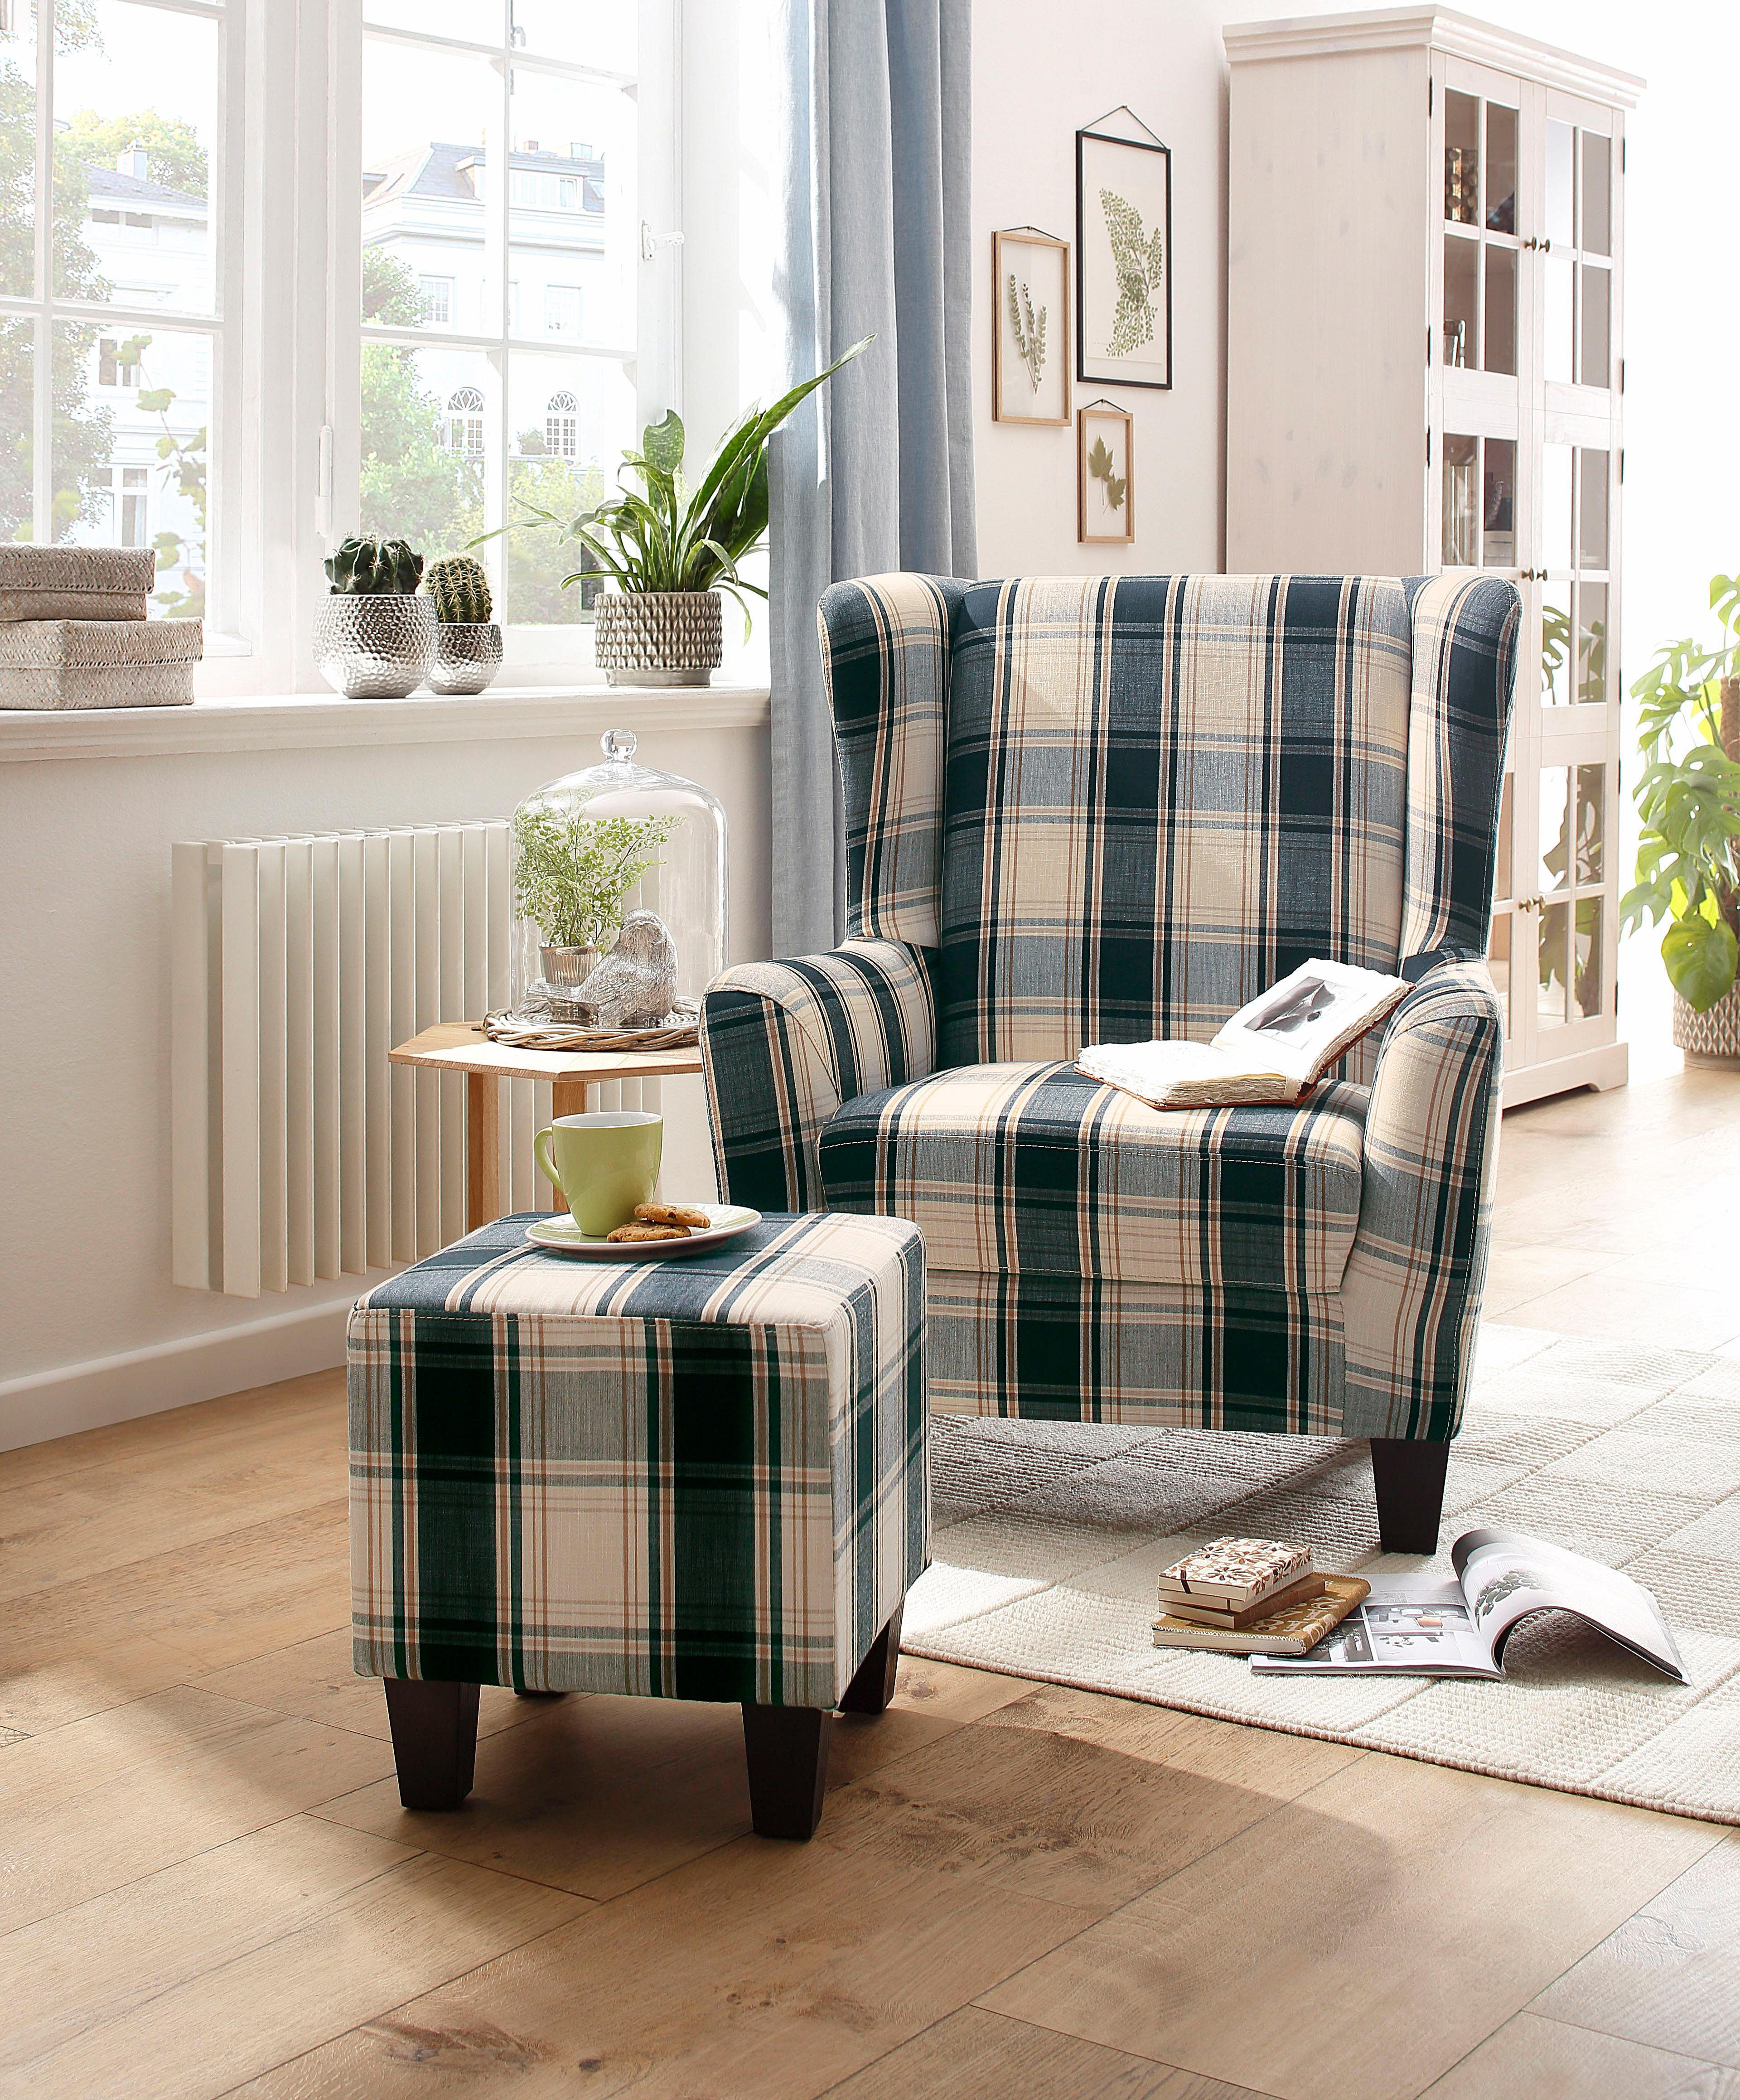 Home affaire Sessel-Set CHILLY, in karo blau